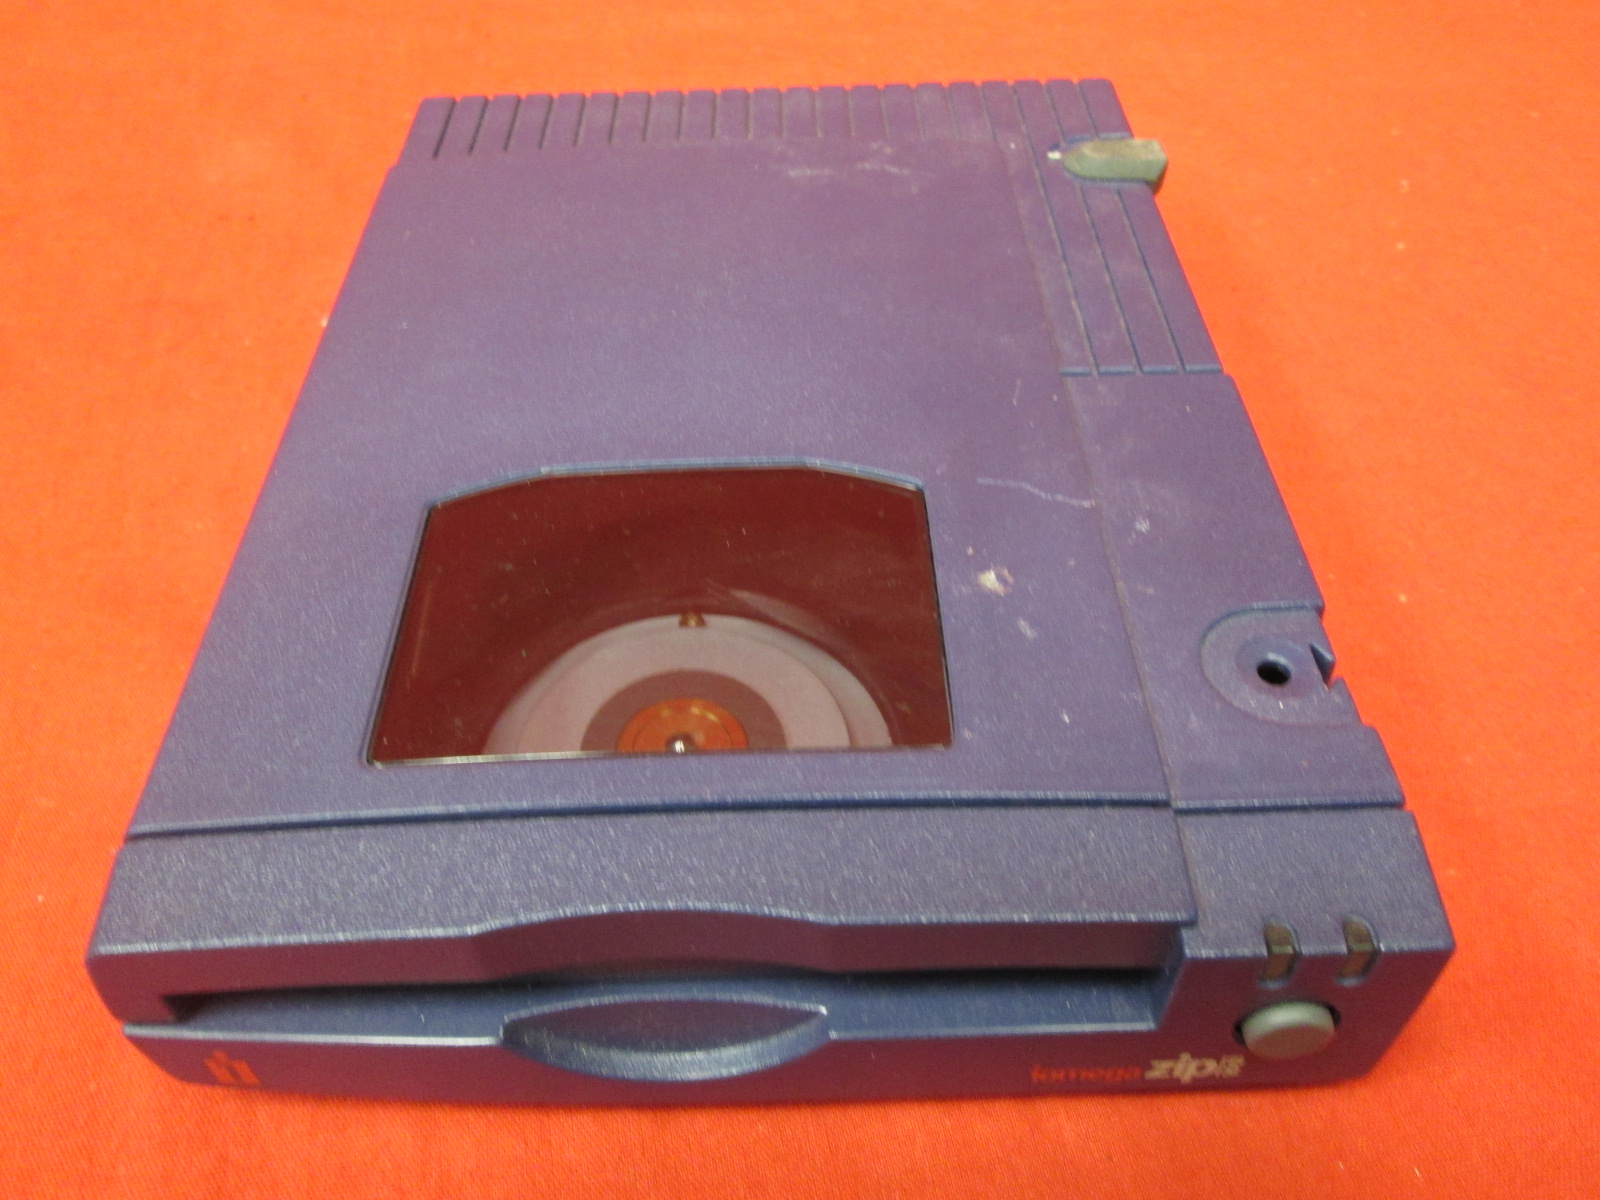 an introduction to the iomega zip drives Since its introduction in 1995, iomega zip drives with removable cartridges have replaced the bernoulli and syquest as the most popular media for.